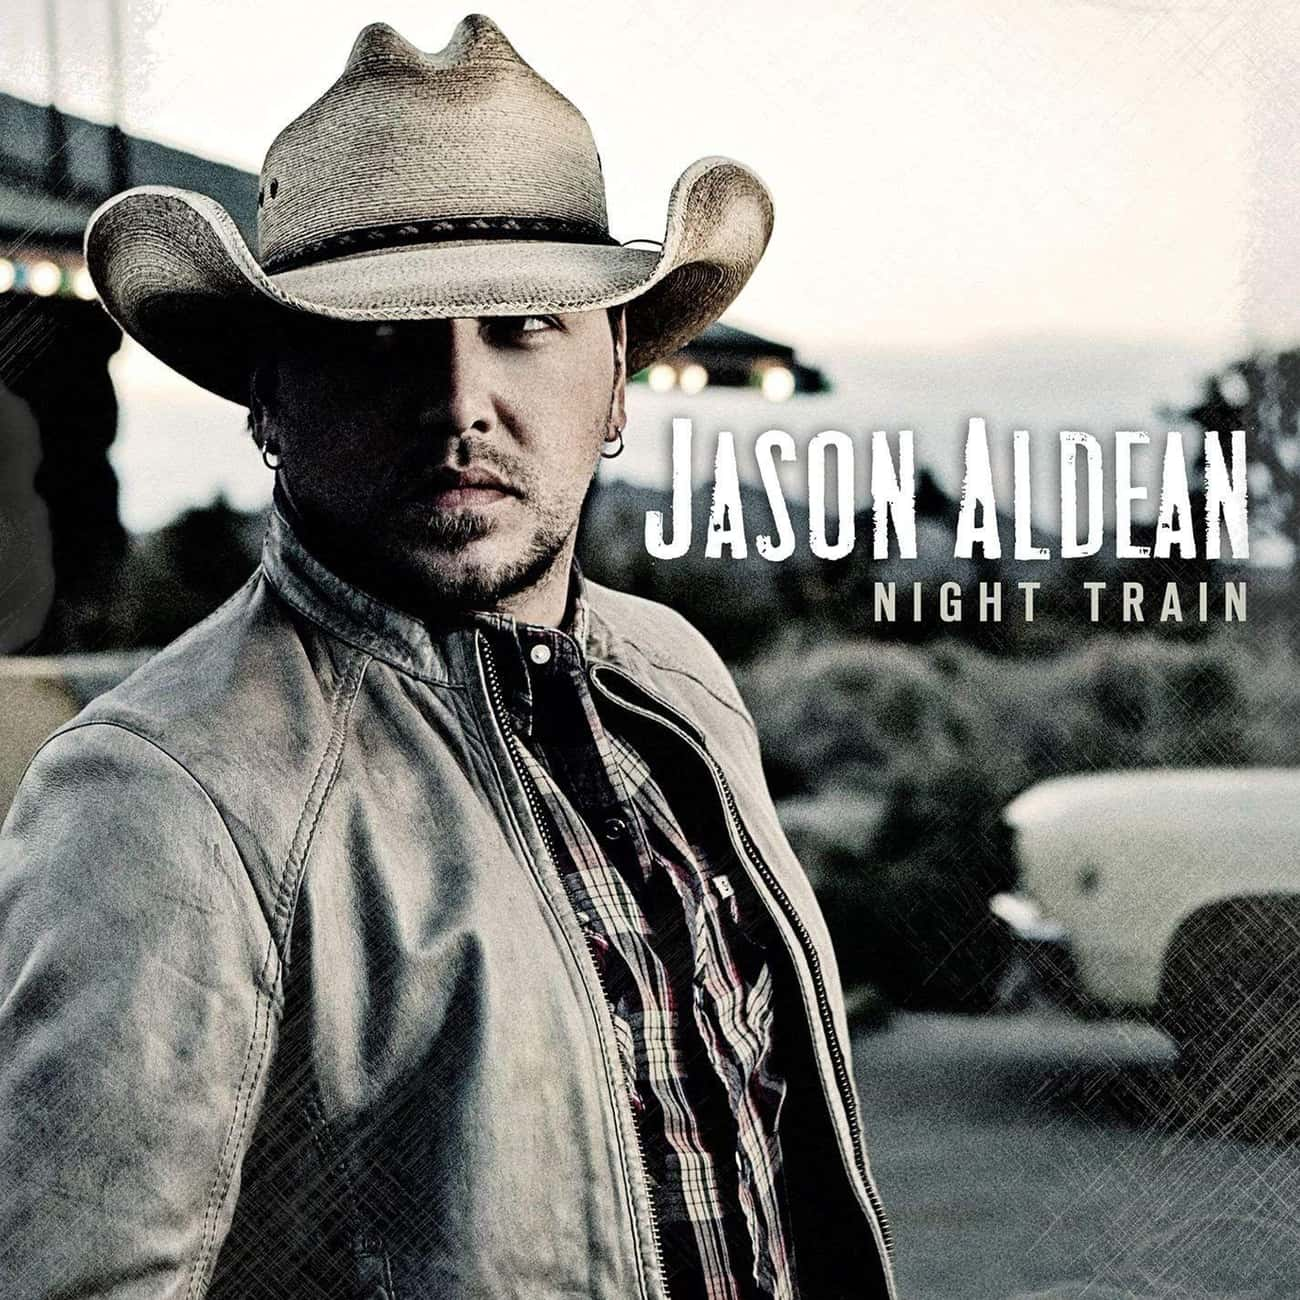 Night Train is listed (or ranked) 2 on the list The Best Jason Aldean Albums, Ranked